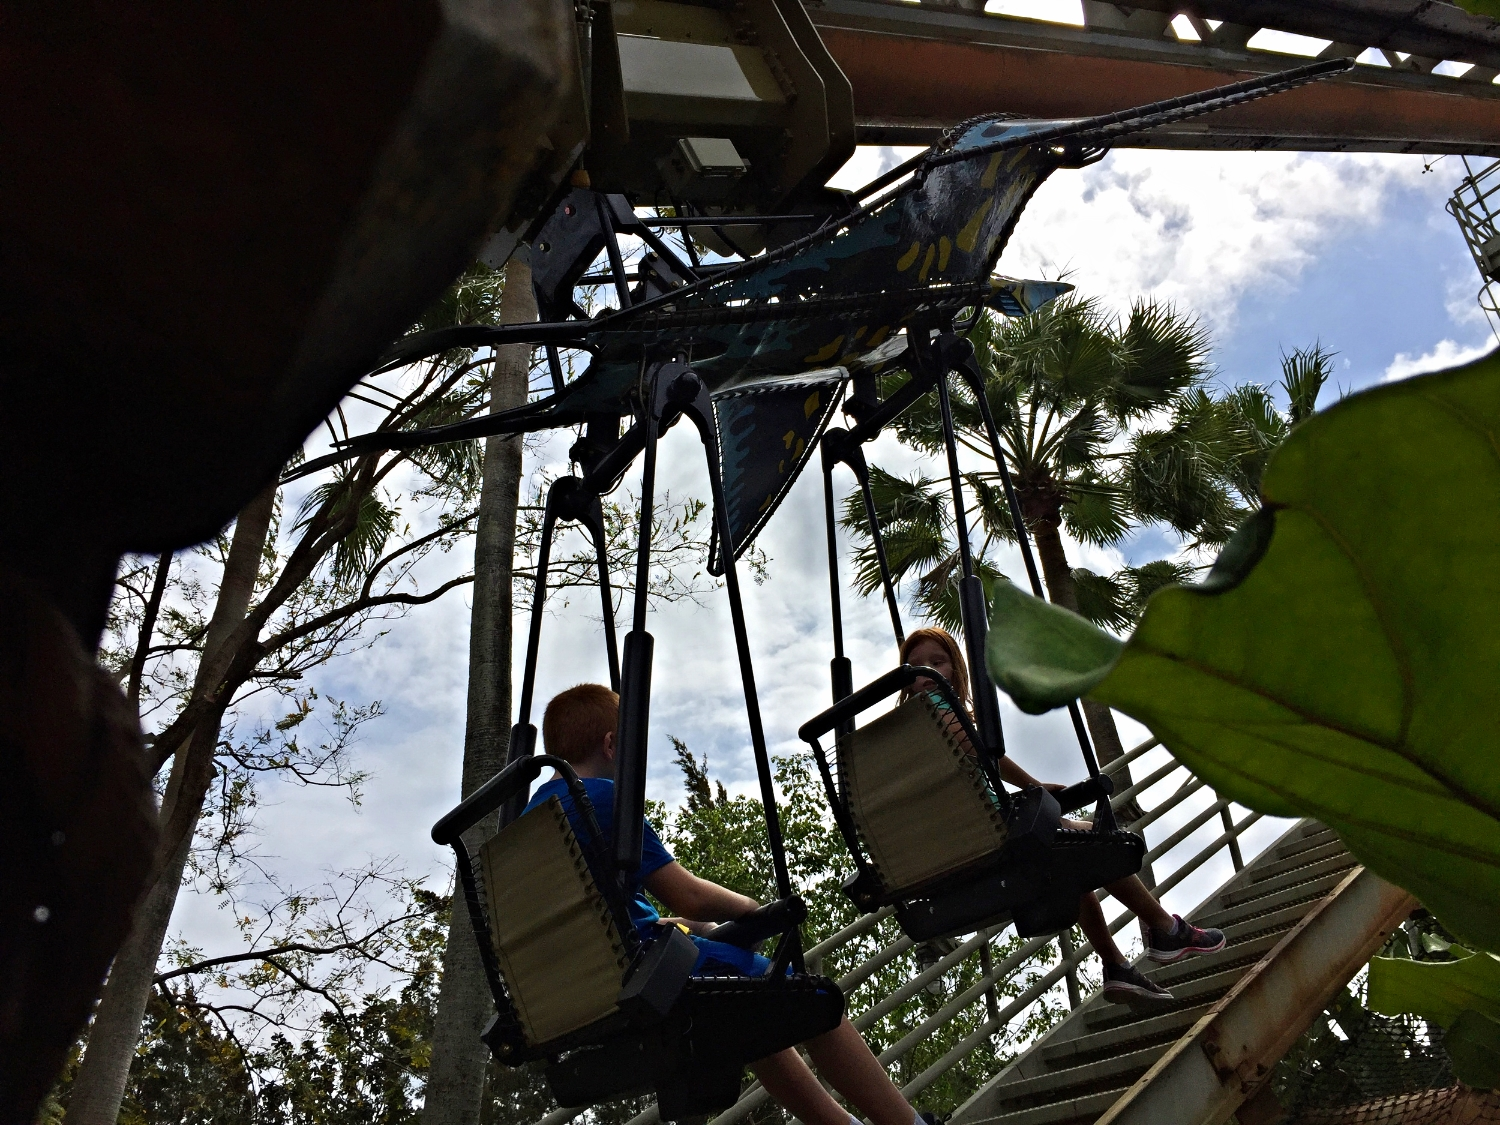 Going up the Lift Hill on Pteranodon Flyers